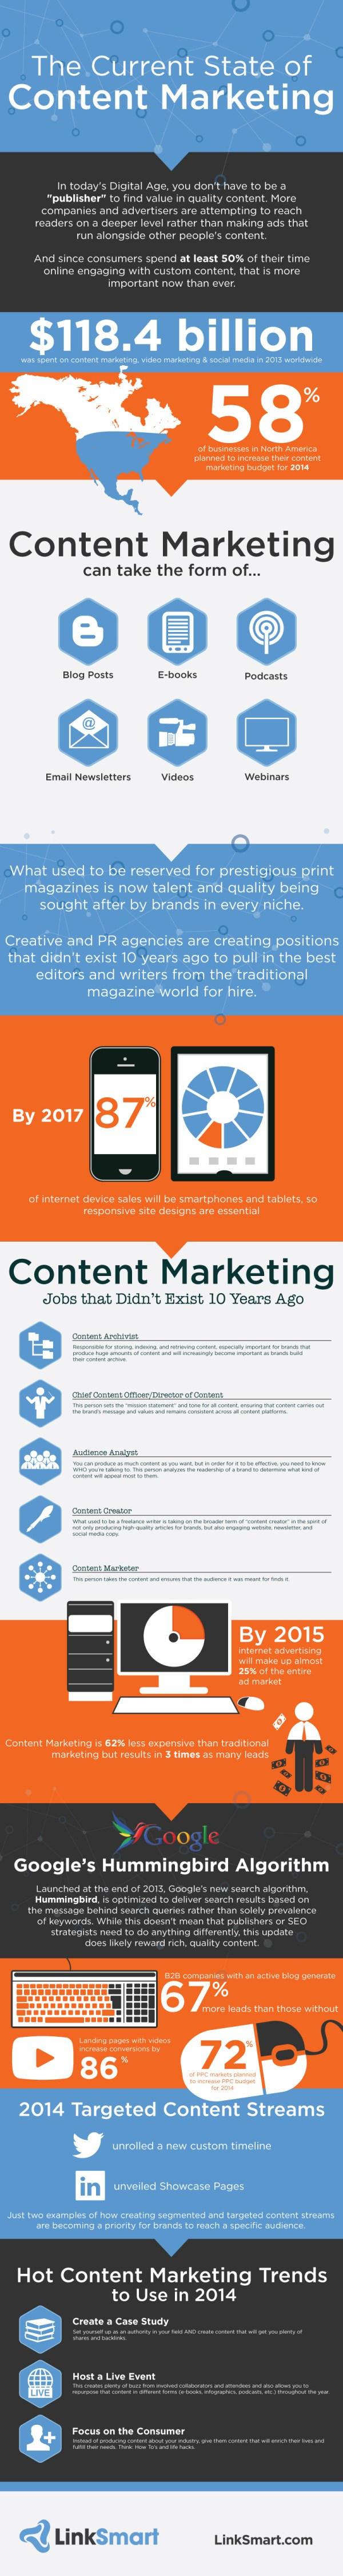 Current State Of Content Marketing Infographic